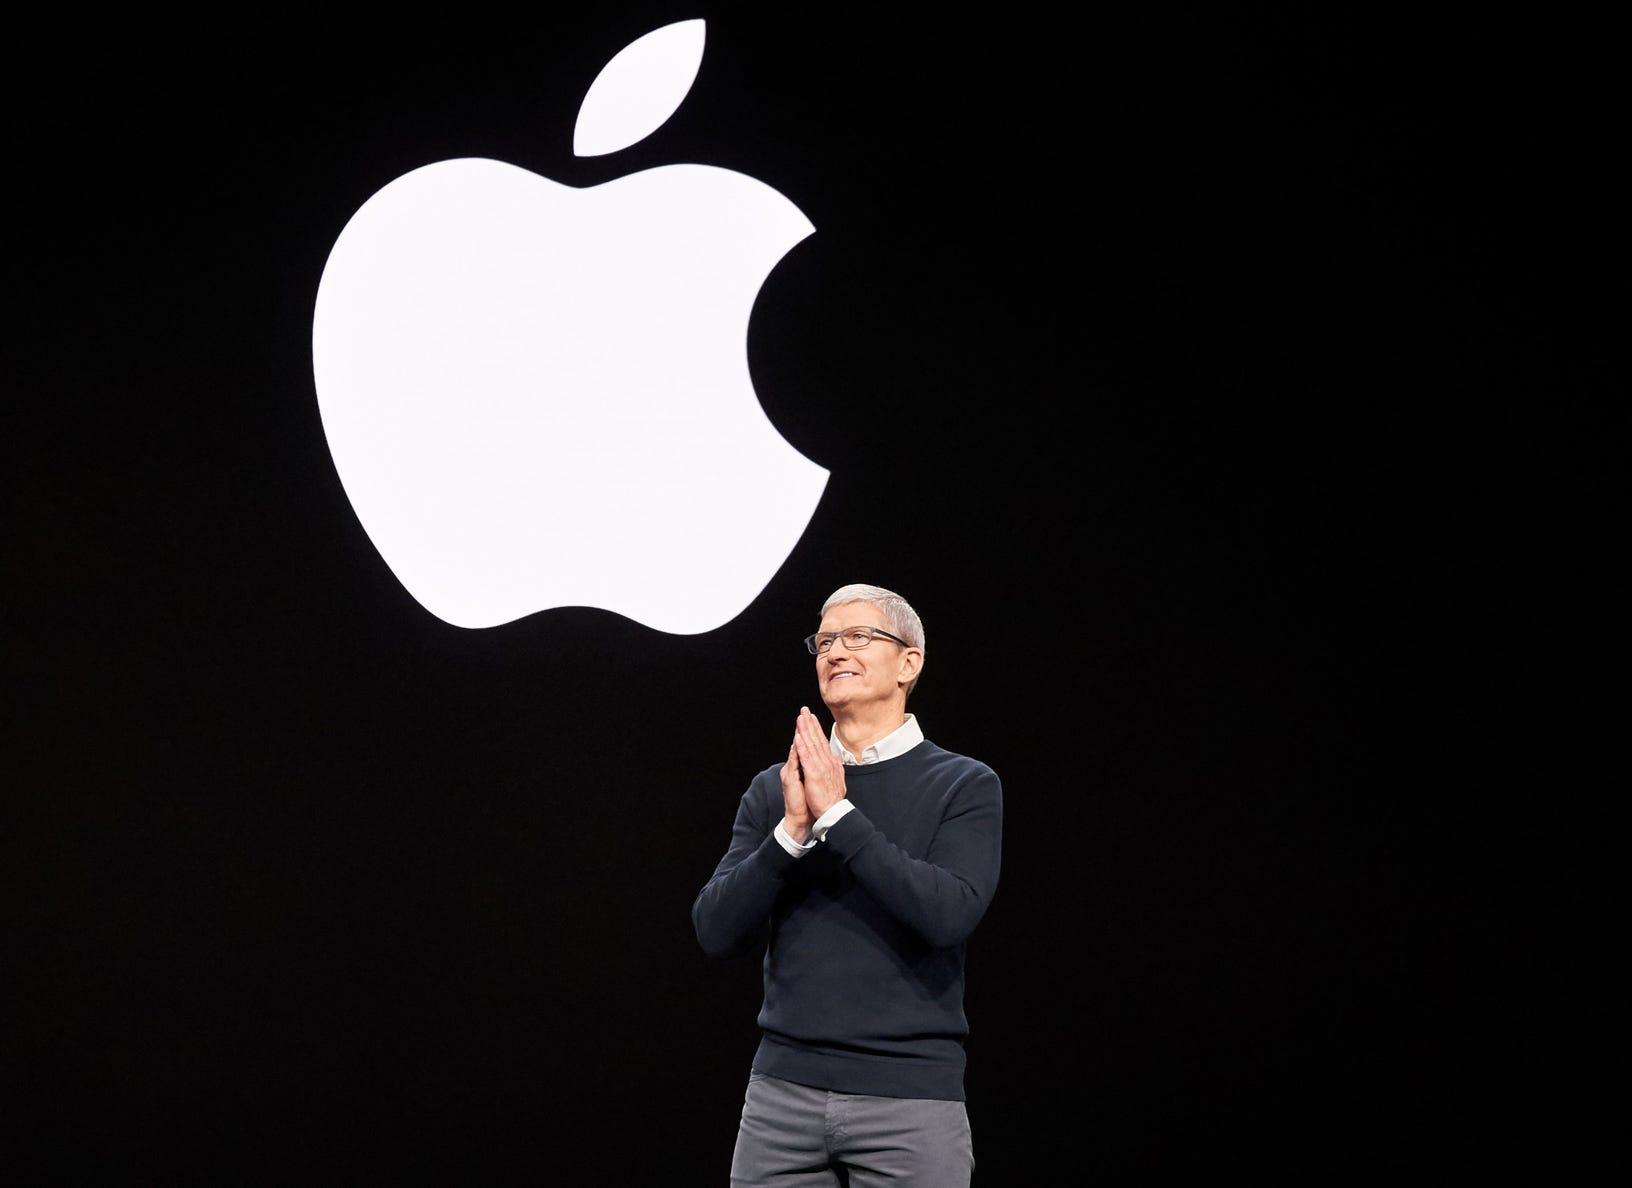 Apple CEO Tim Cook talks all-time records and accelerating growth in wearables